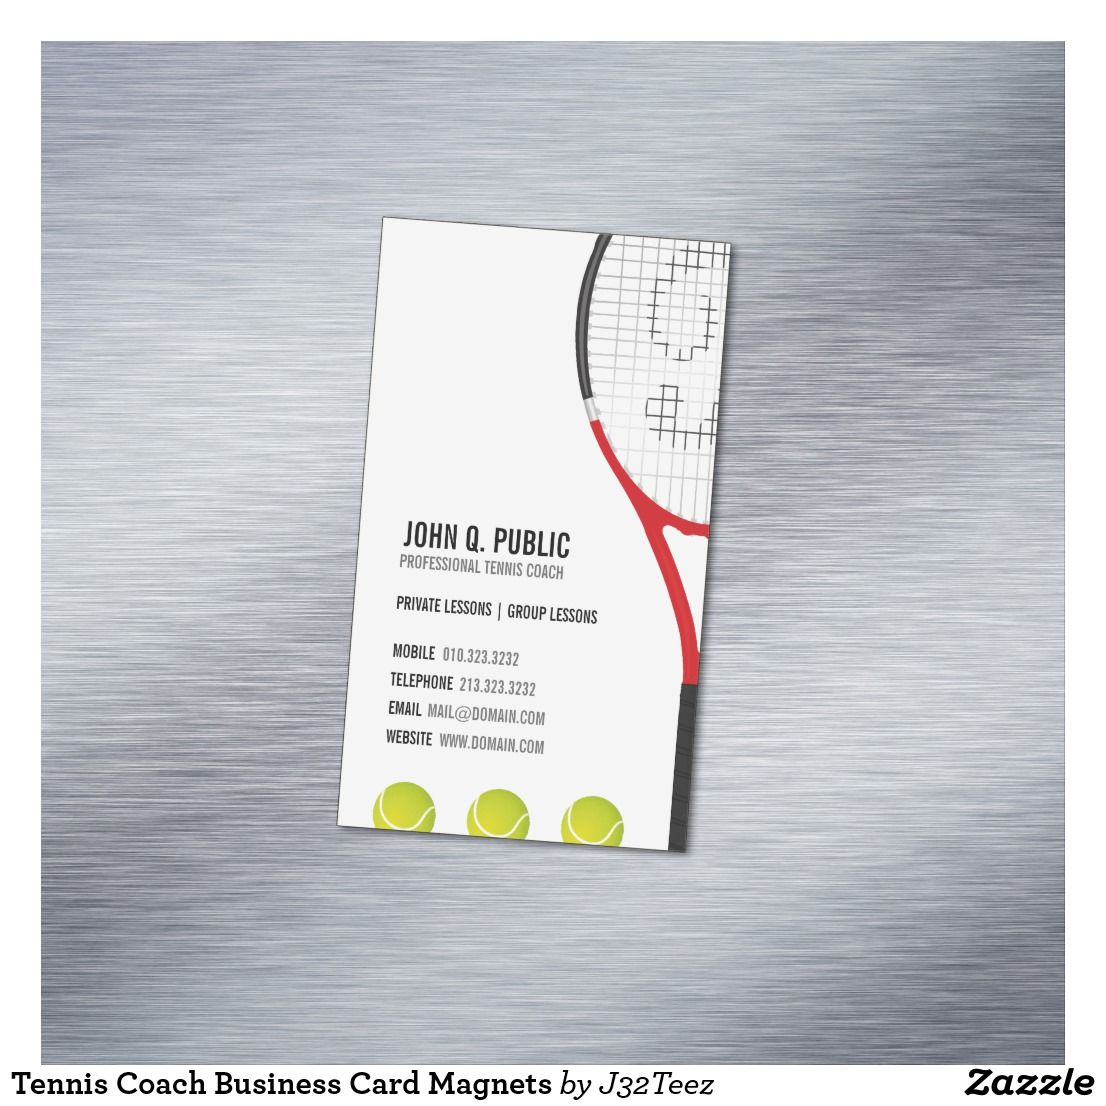 Tennis Coach Business Card Magnets | Business Card Templates ...